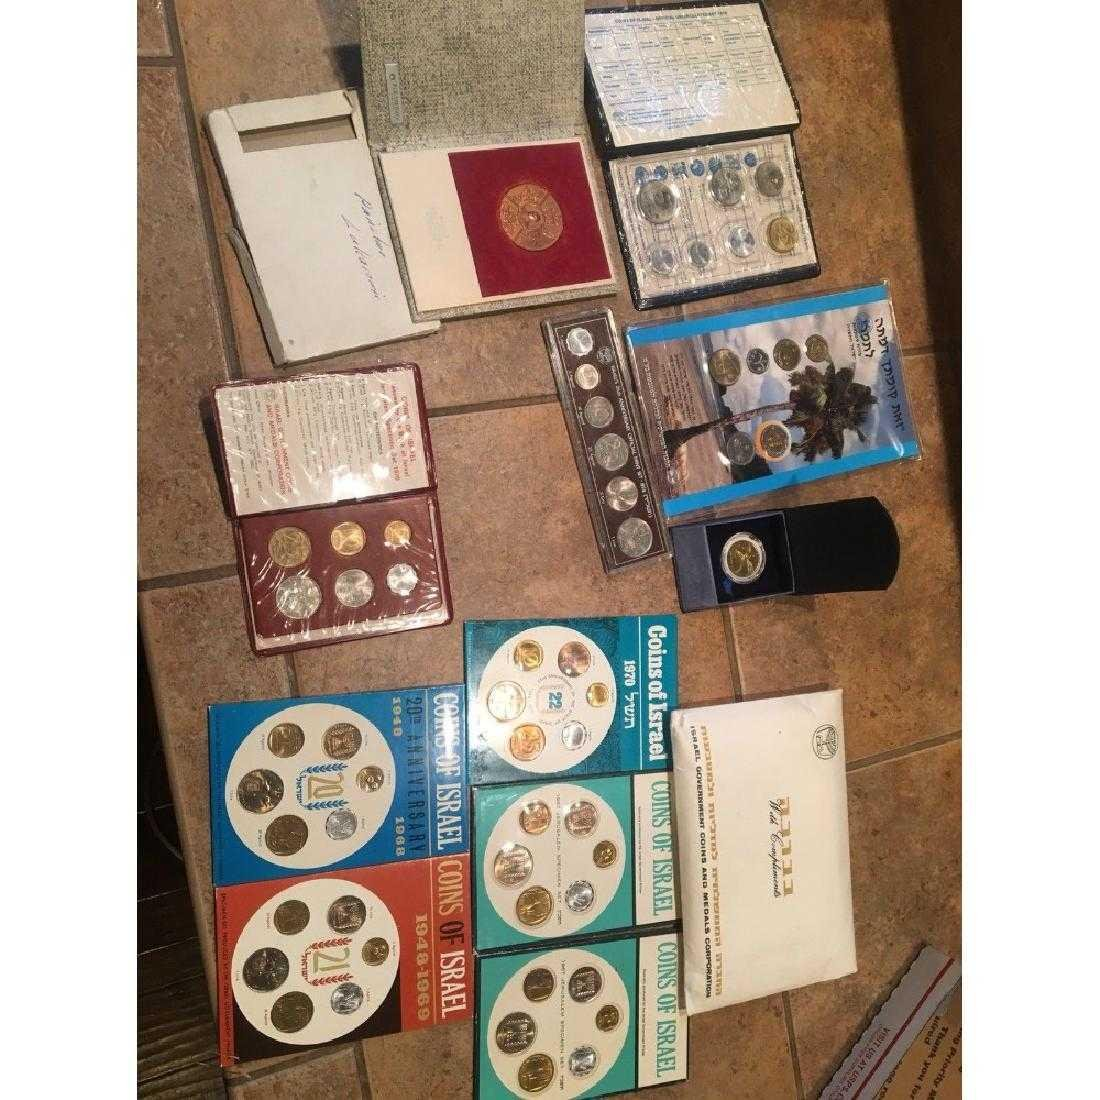 Israel Coin sets and rare pope Medal